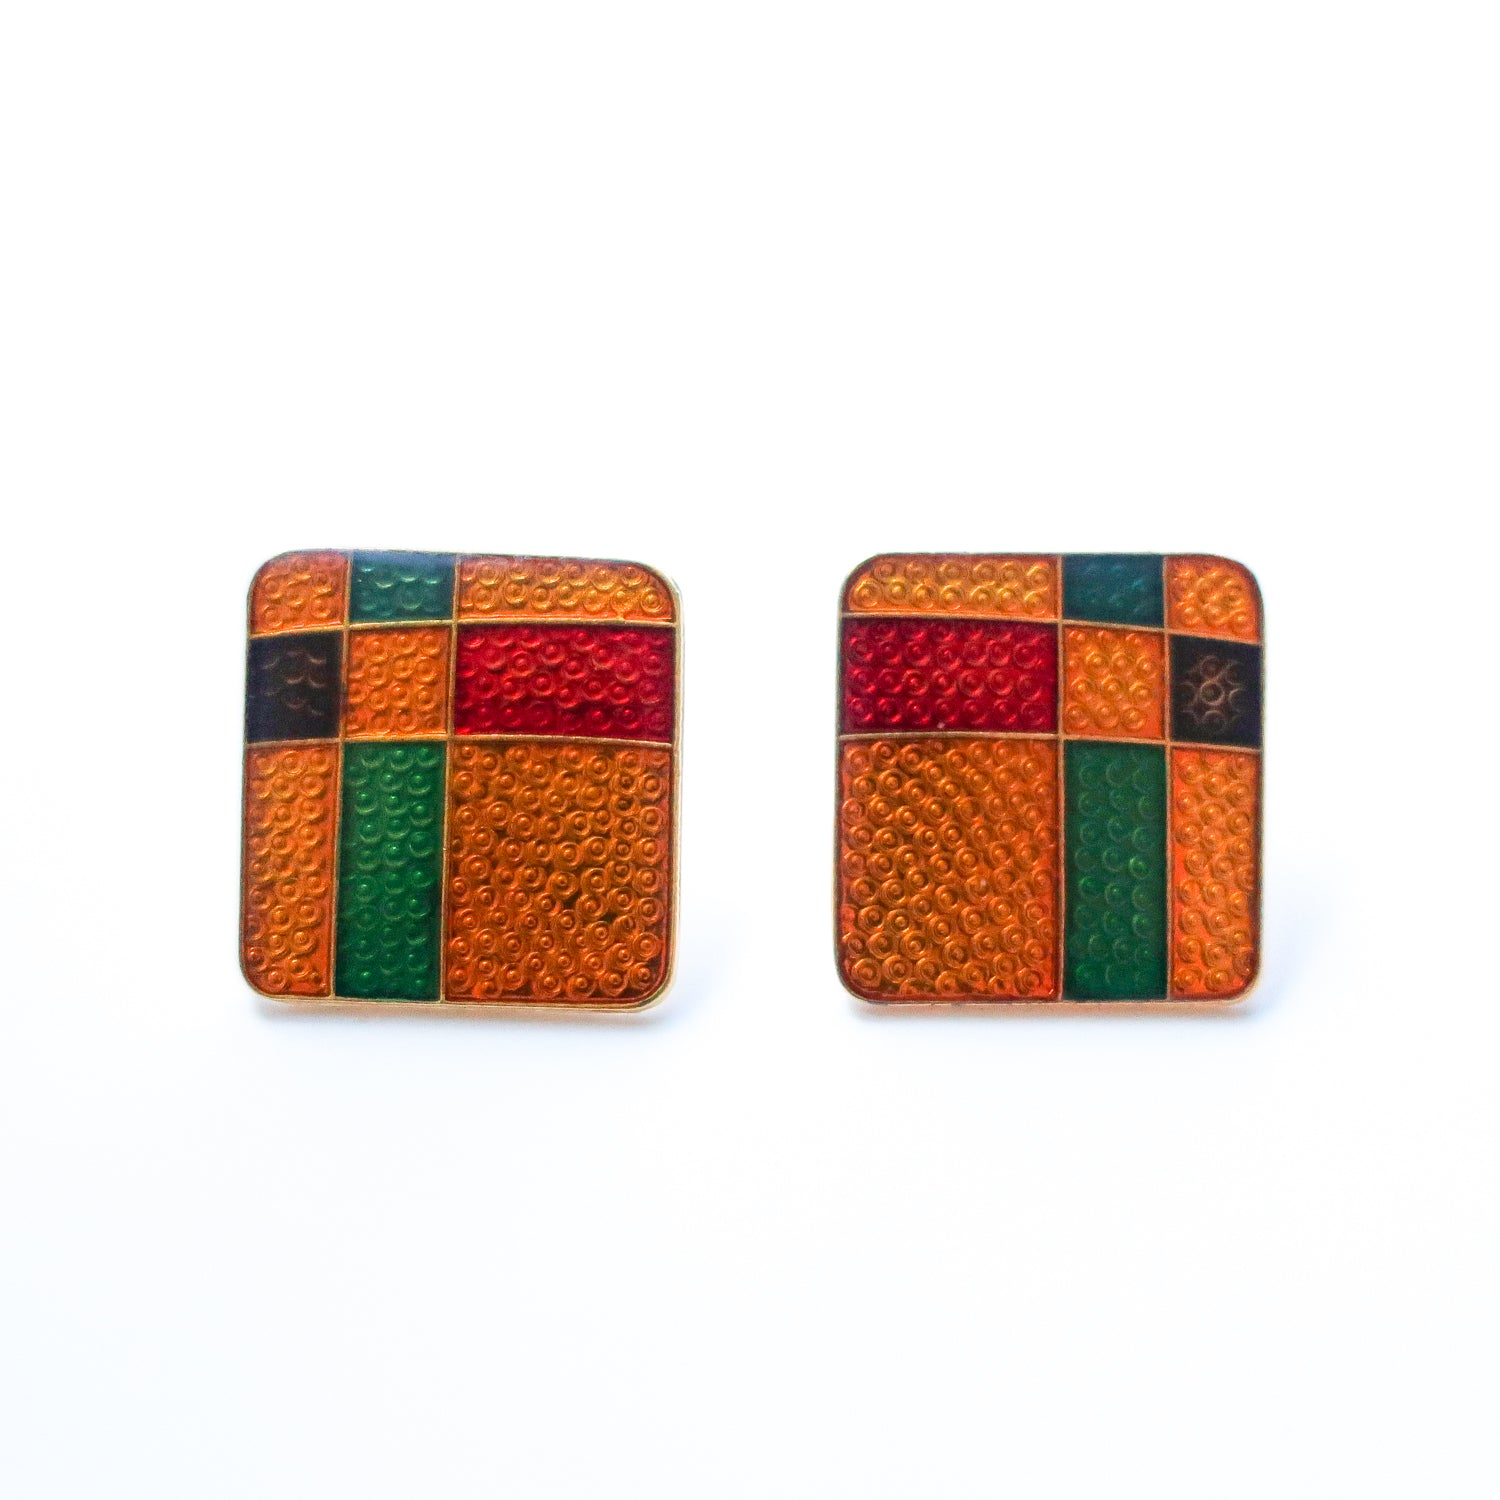 "Second Room Vintage Clothing. Vintage gold tone earrings, with yellow, red, green and purple rectangle design. These earrings are 3/4"" square. Original earring backs have been replaced with new, clear silicone backings. Free North American shipping on all orders."